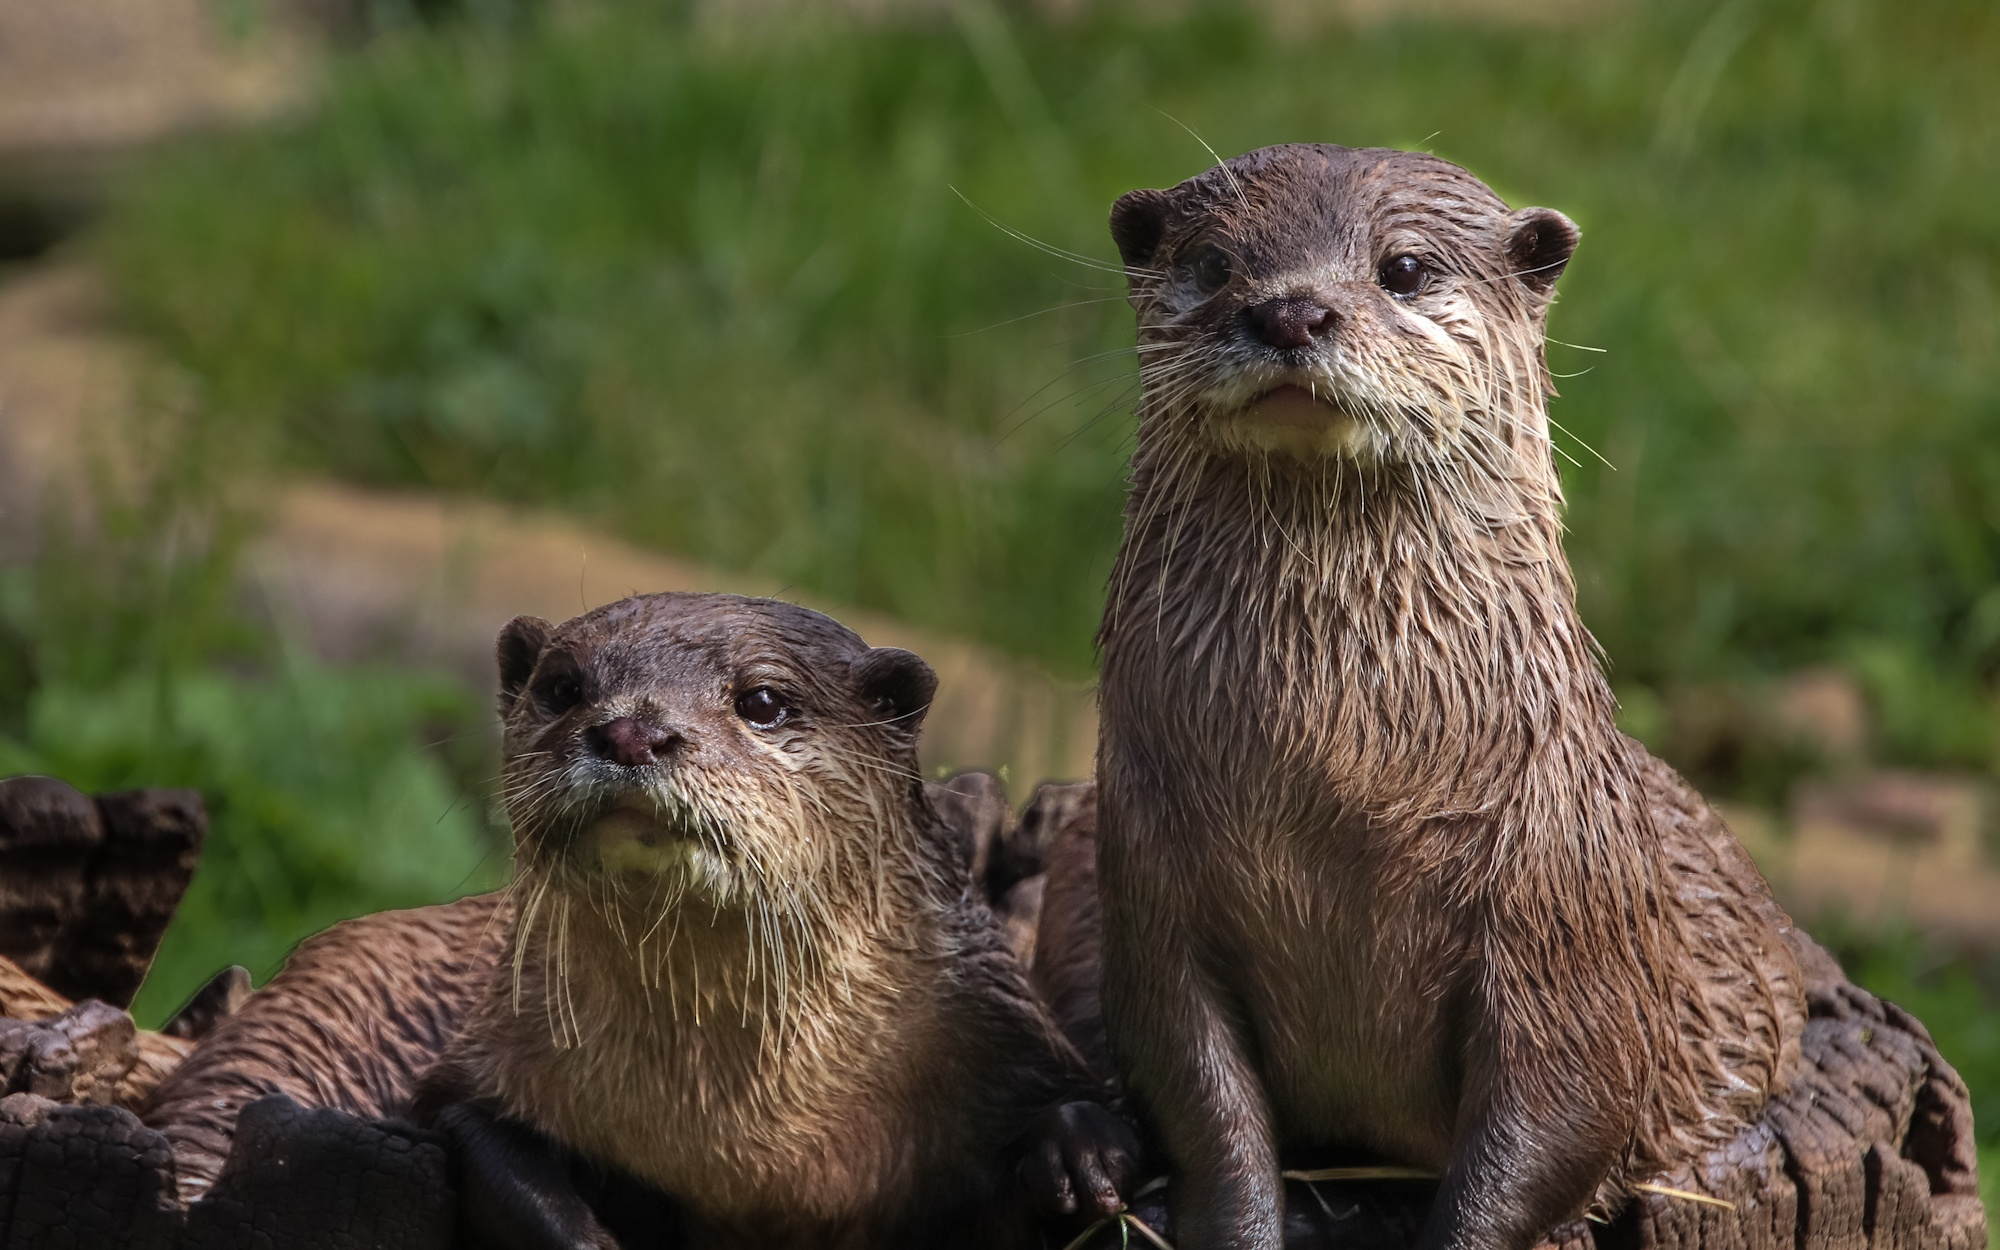 Inquisitive Otters